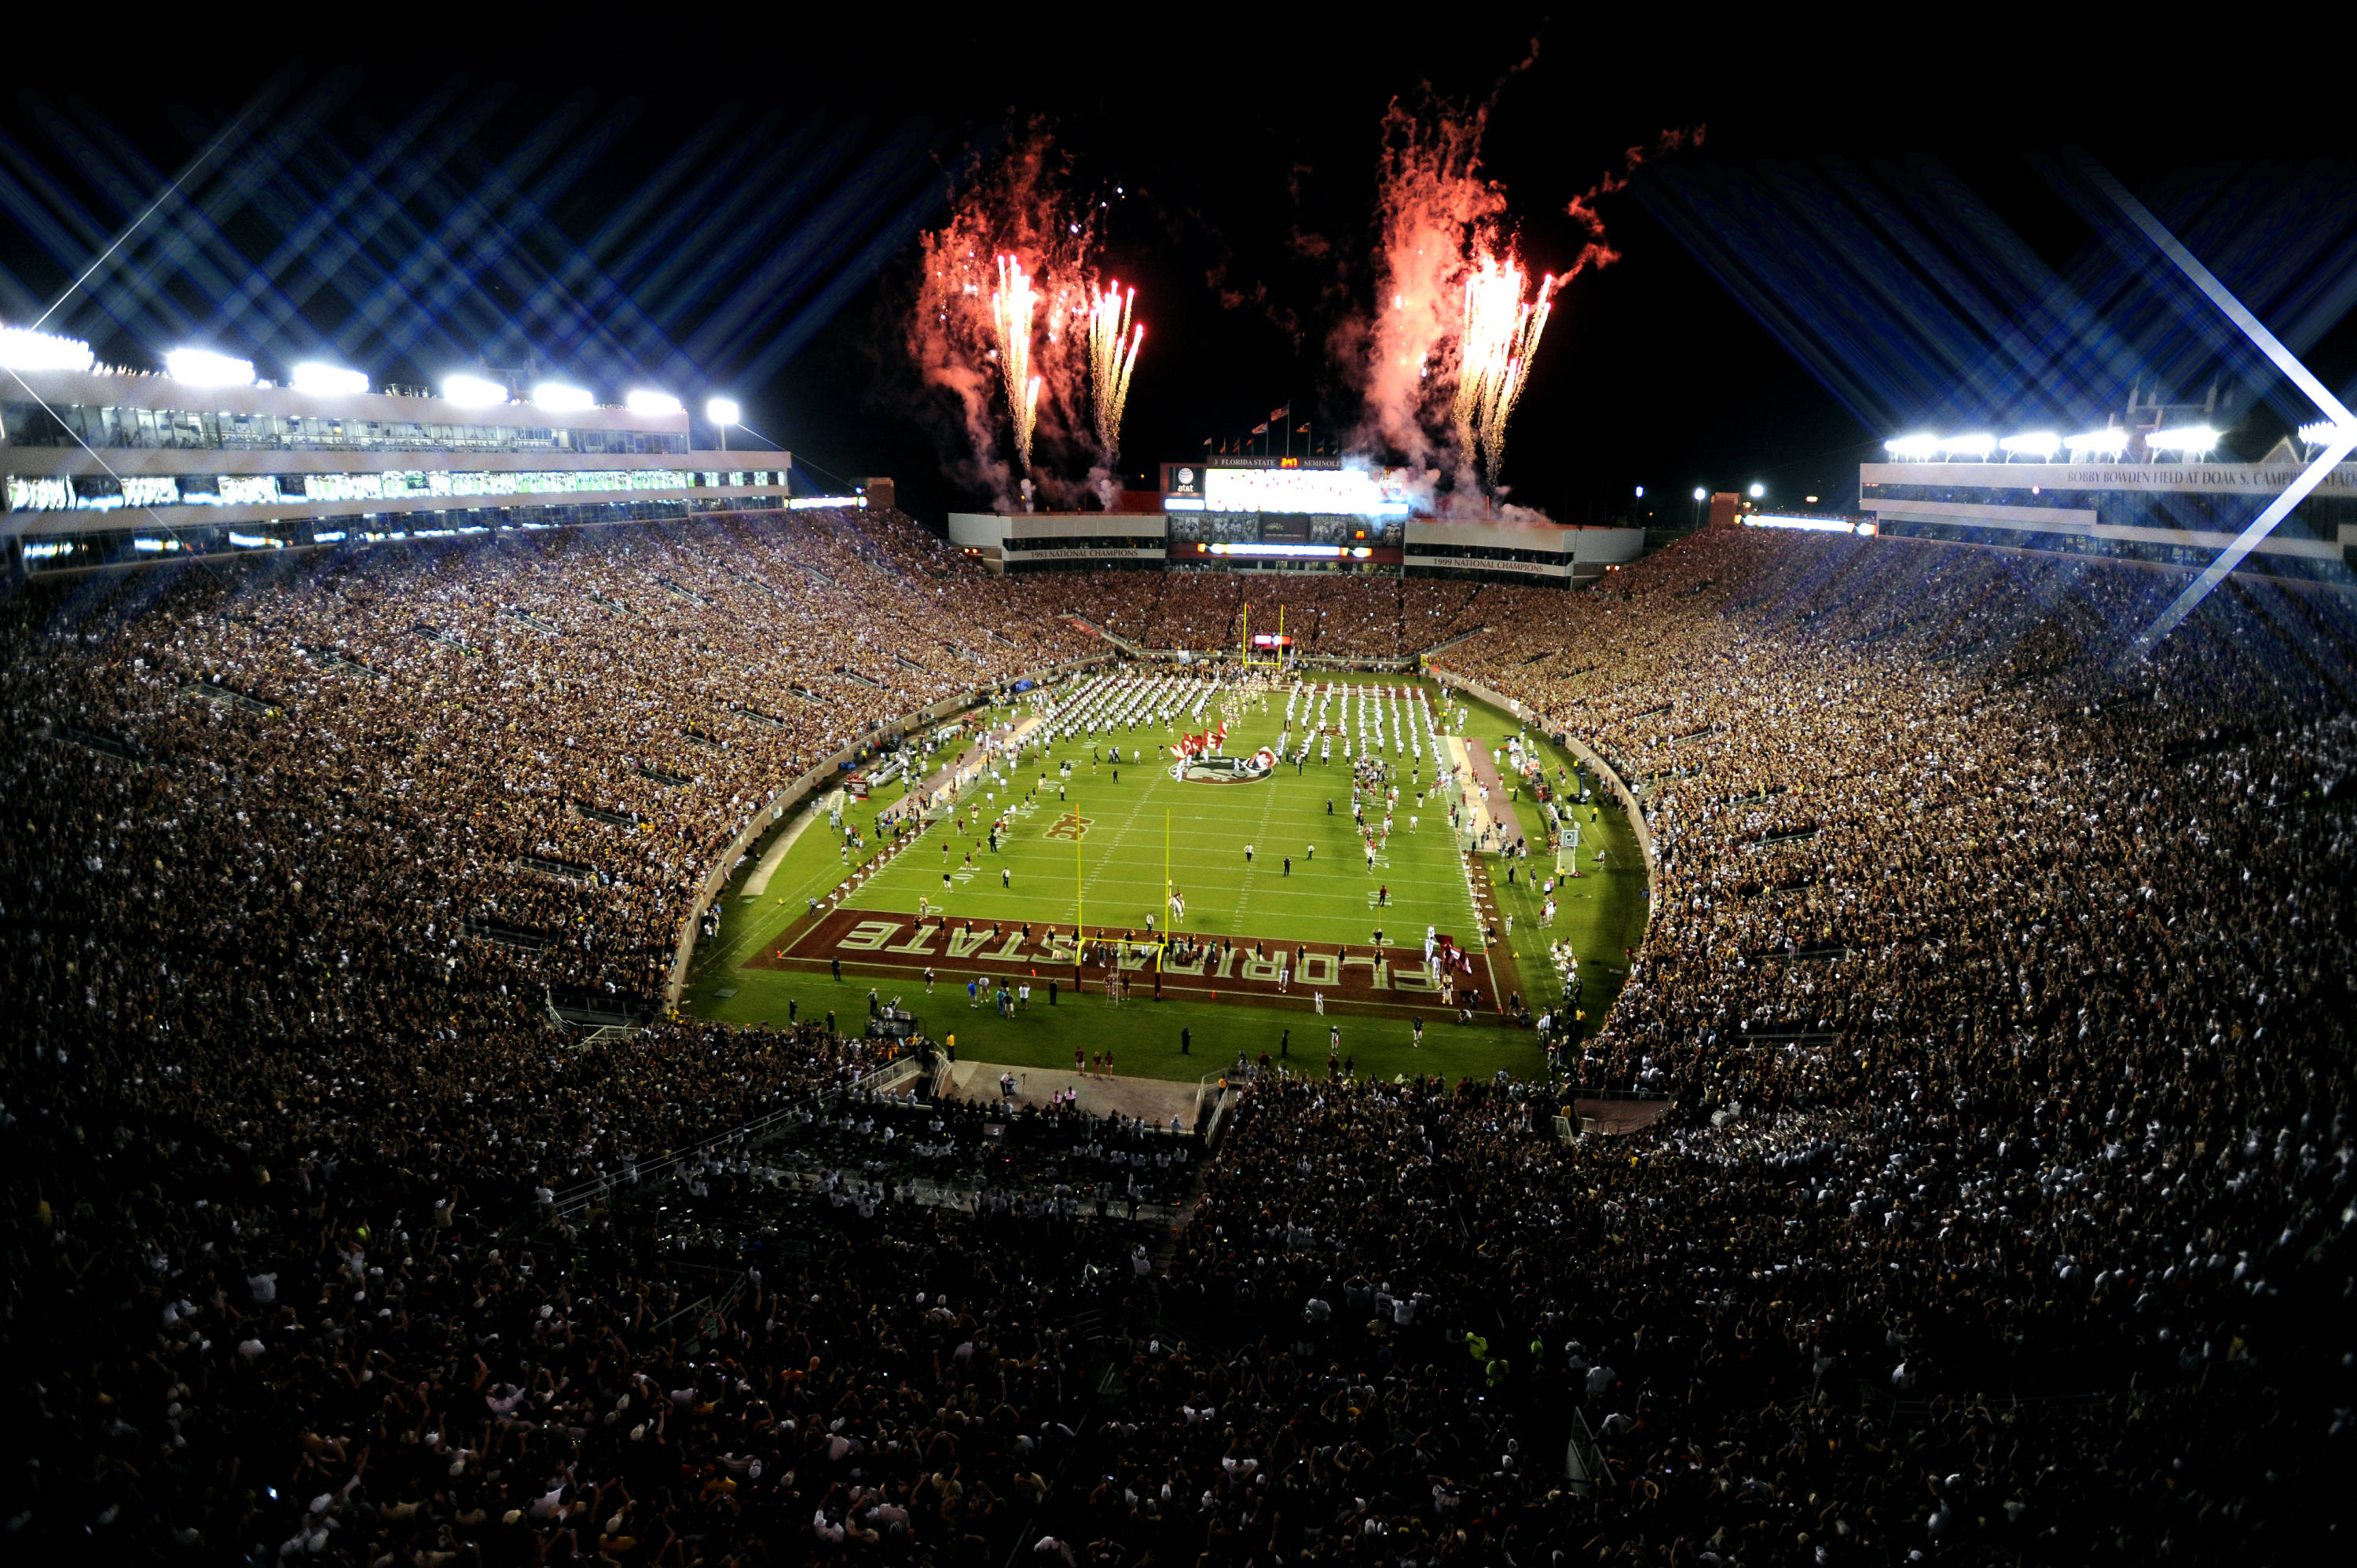 A view from atop Doak Campbell Stadium as the Seminoles took the field.